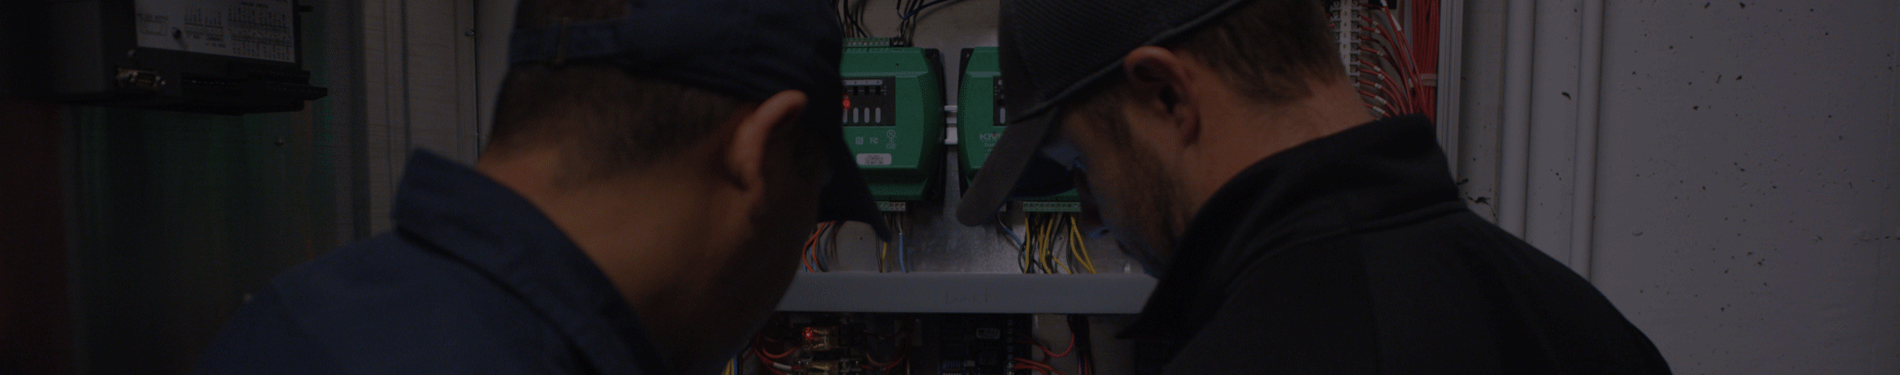 two workers working on a building control system